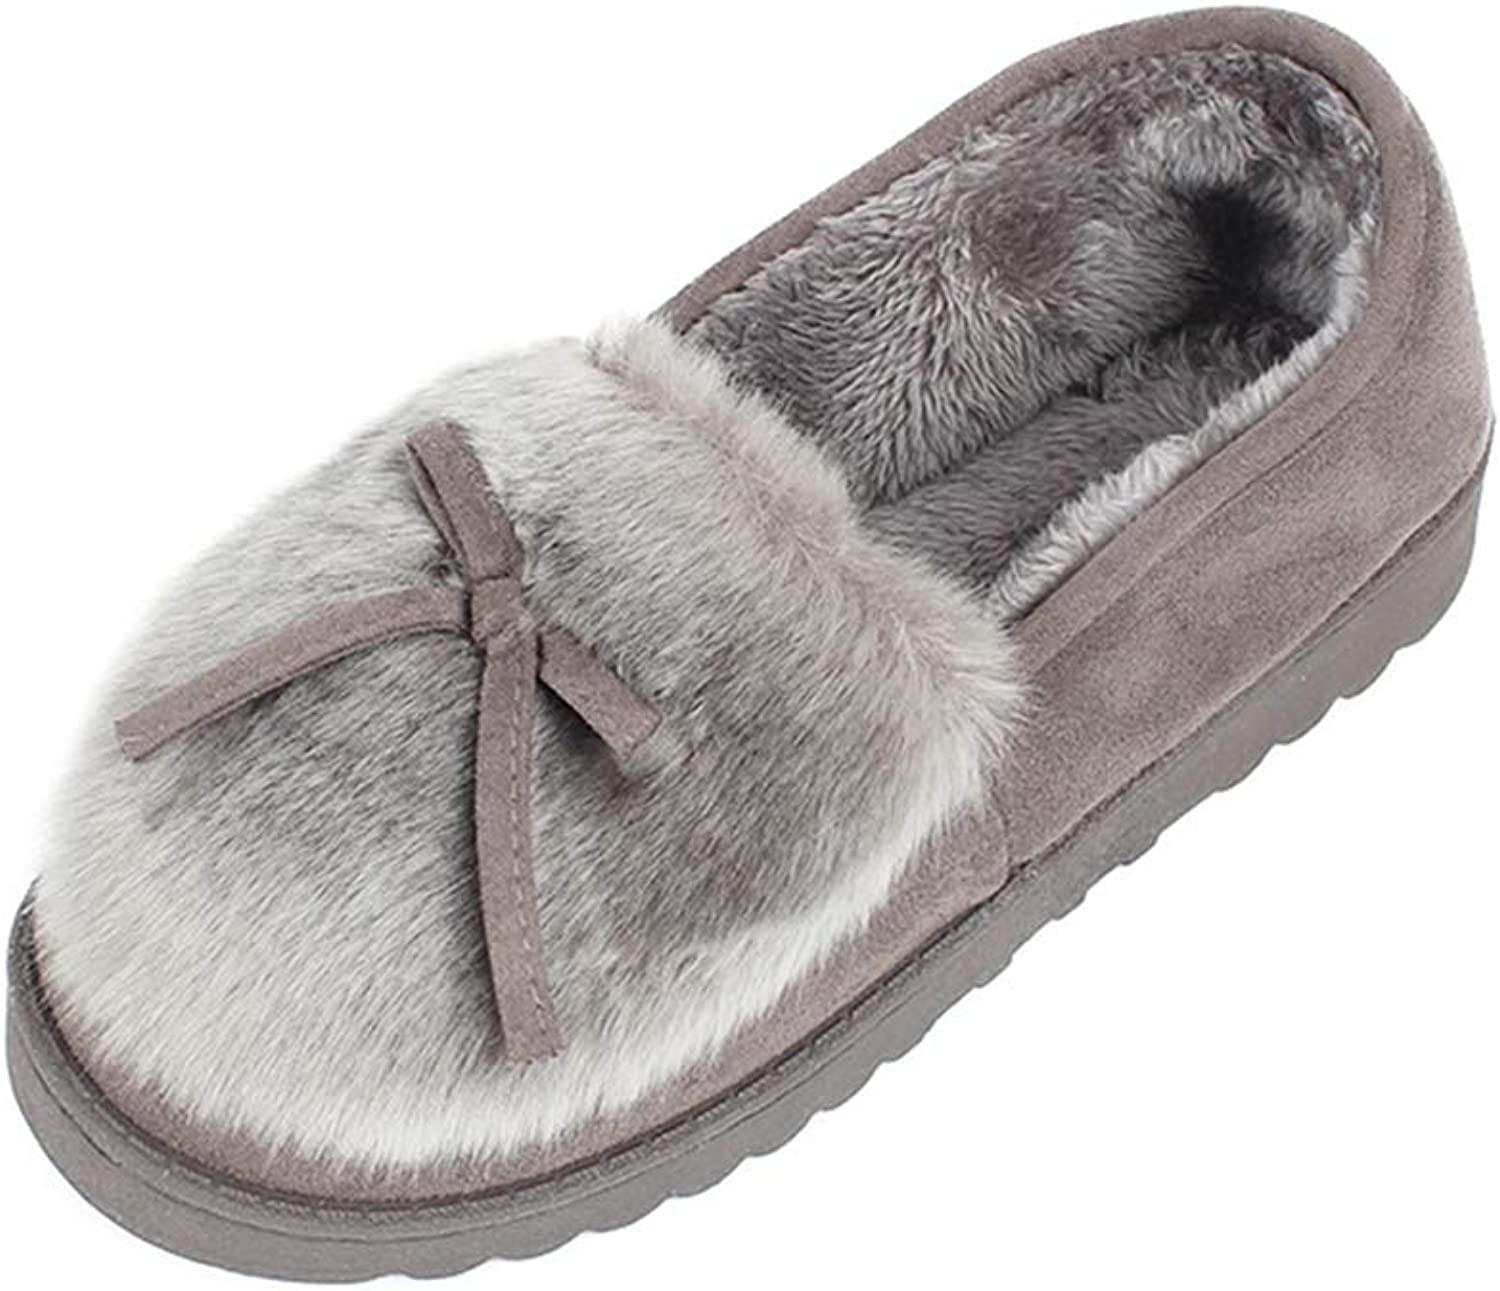 Zarbrina Winter Suede Fabric Bowknot Non-Slip Women Home Slippers Breathable Warm Soft Indoor Bedroom Spa shoes